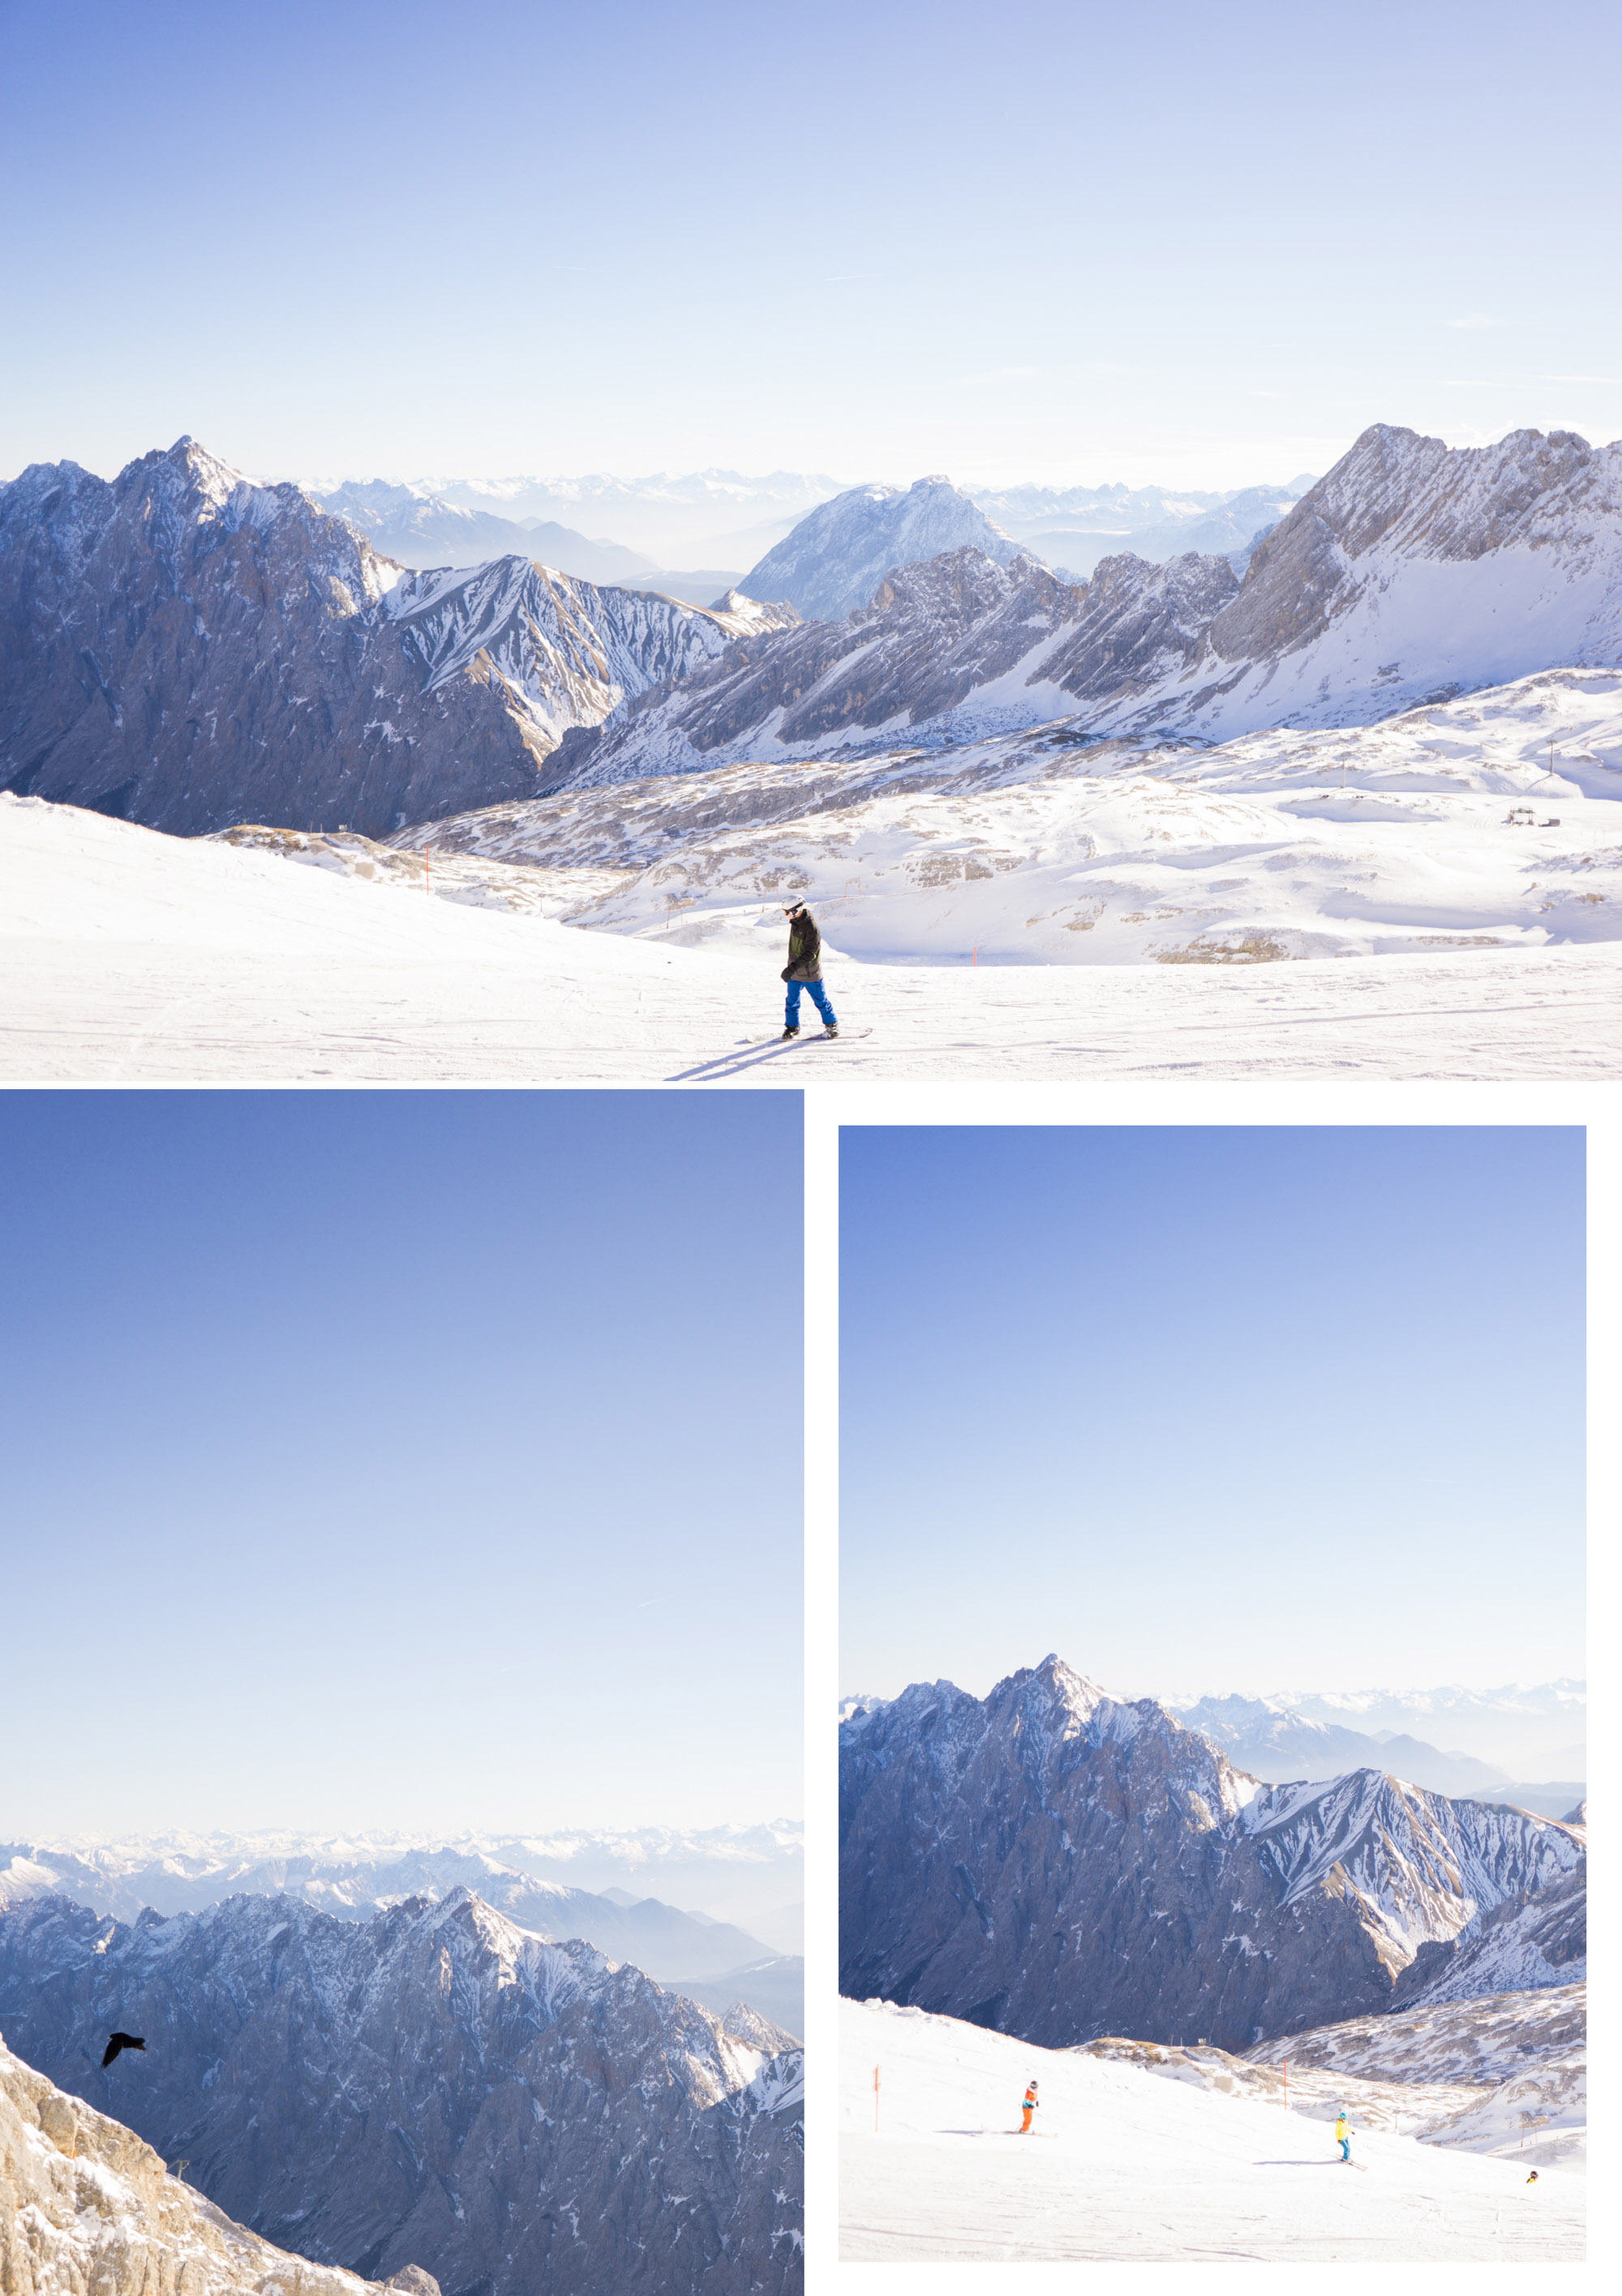 Zugspitze Travel Guide   Top of Germany   Experience the Top of Germany with this handy travel guide, containing whimsical travel photography and useful travel tips.